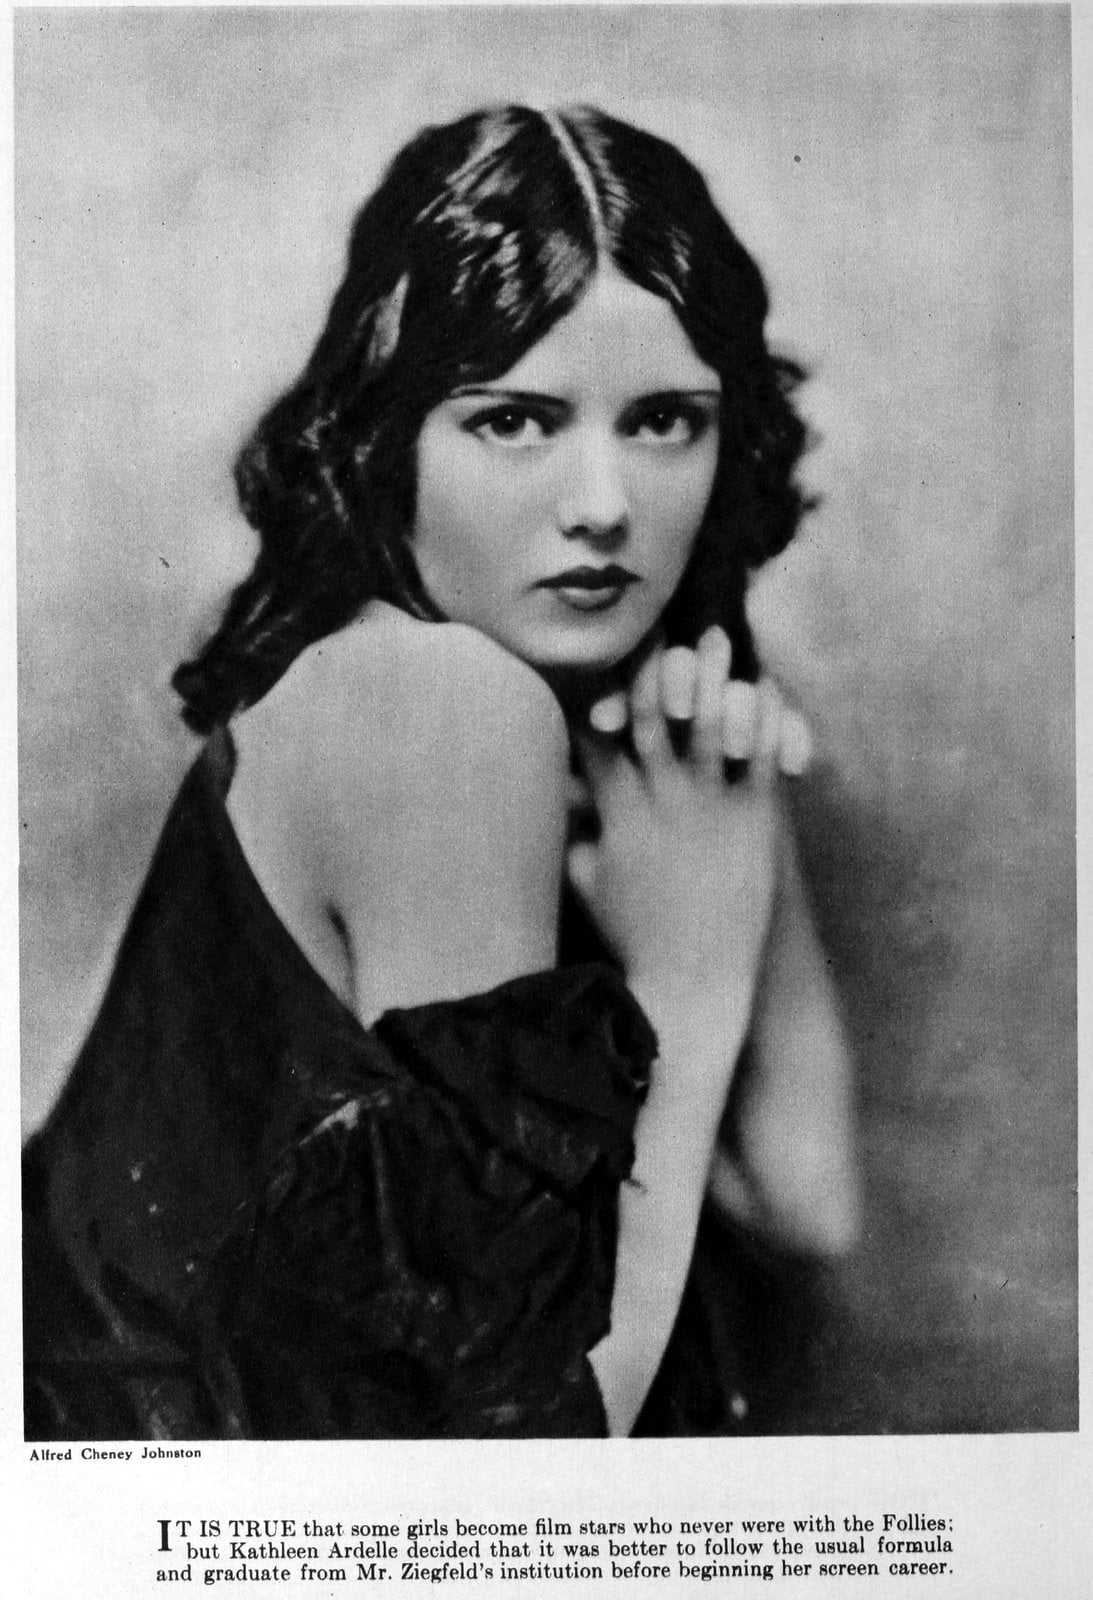 Real vintage 1920s hairstyles for women - actress Kathleen Ardelle